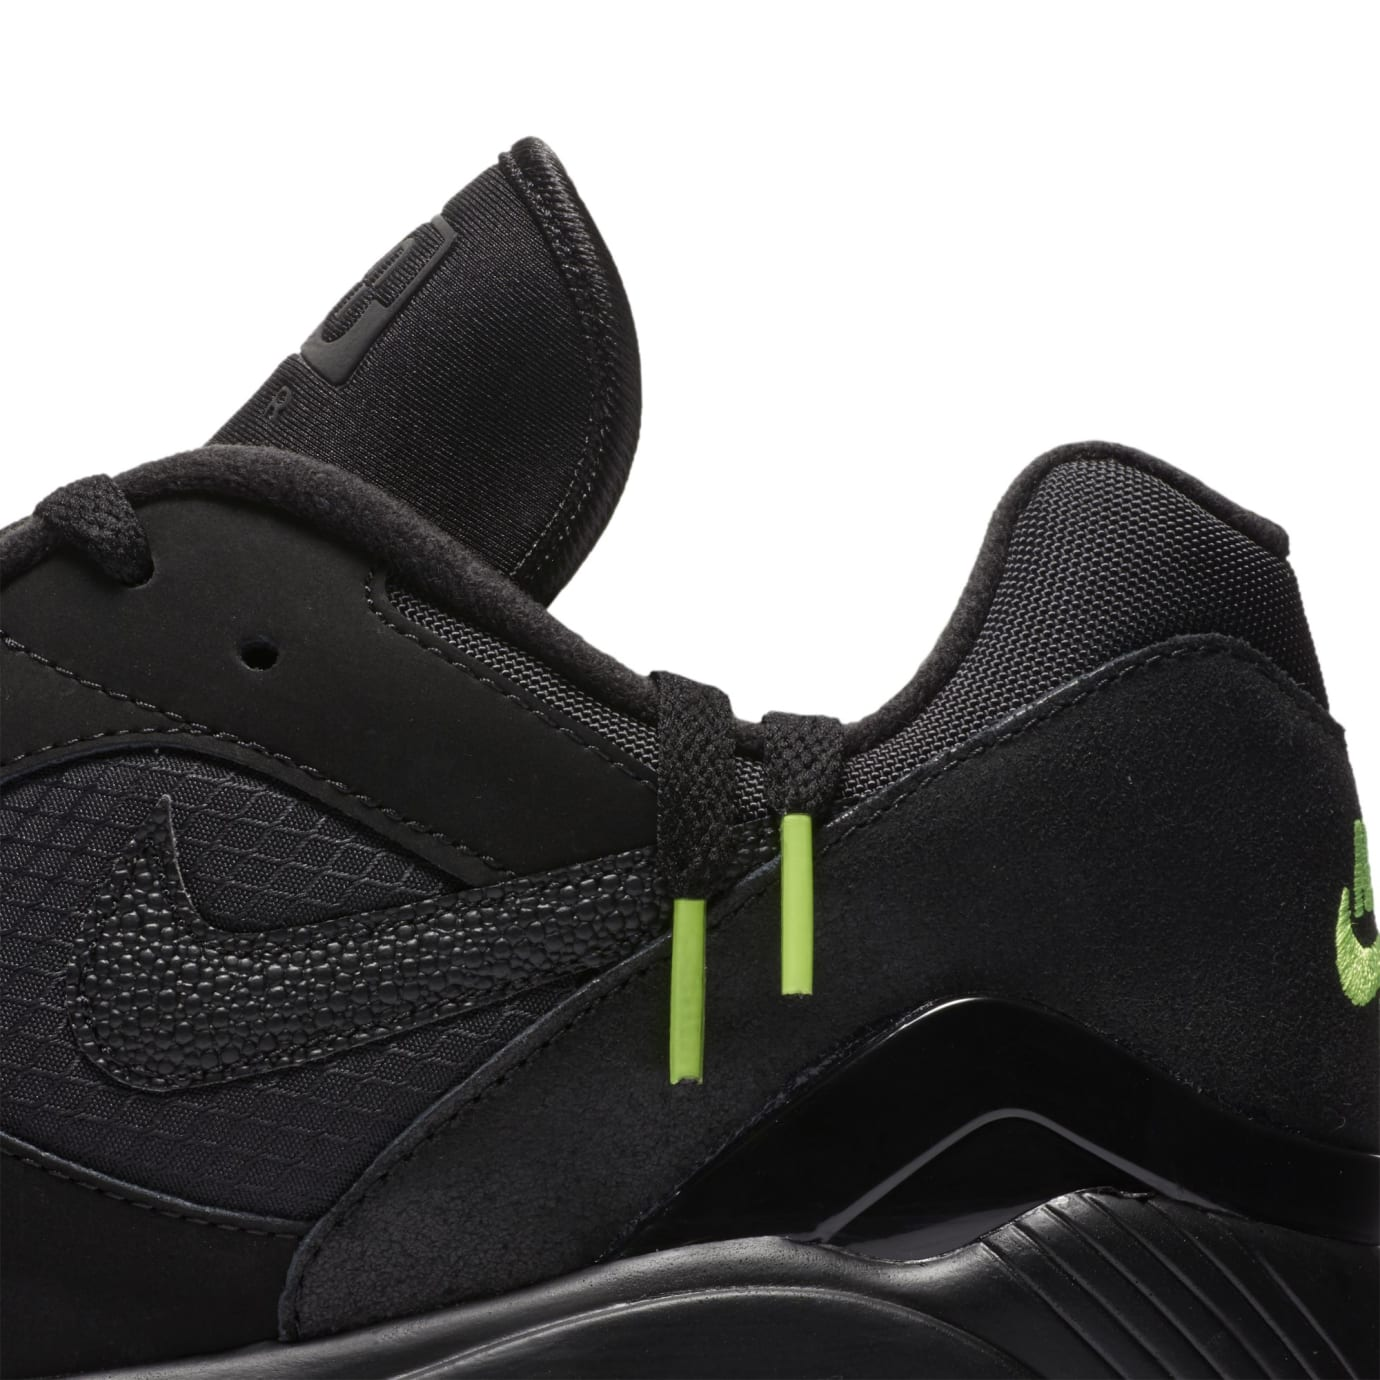 Nike Air Max 180 'Black/Black-Volt' (Detail)